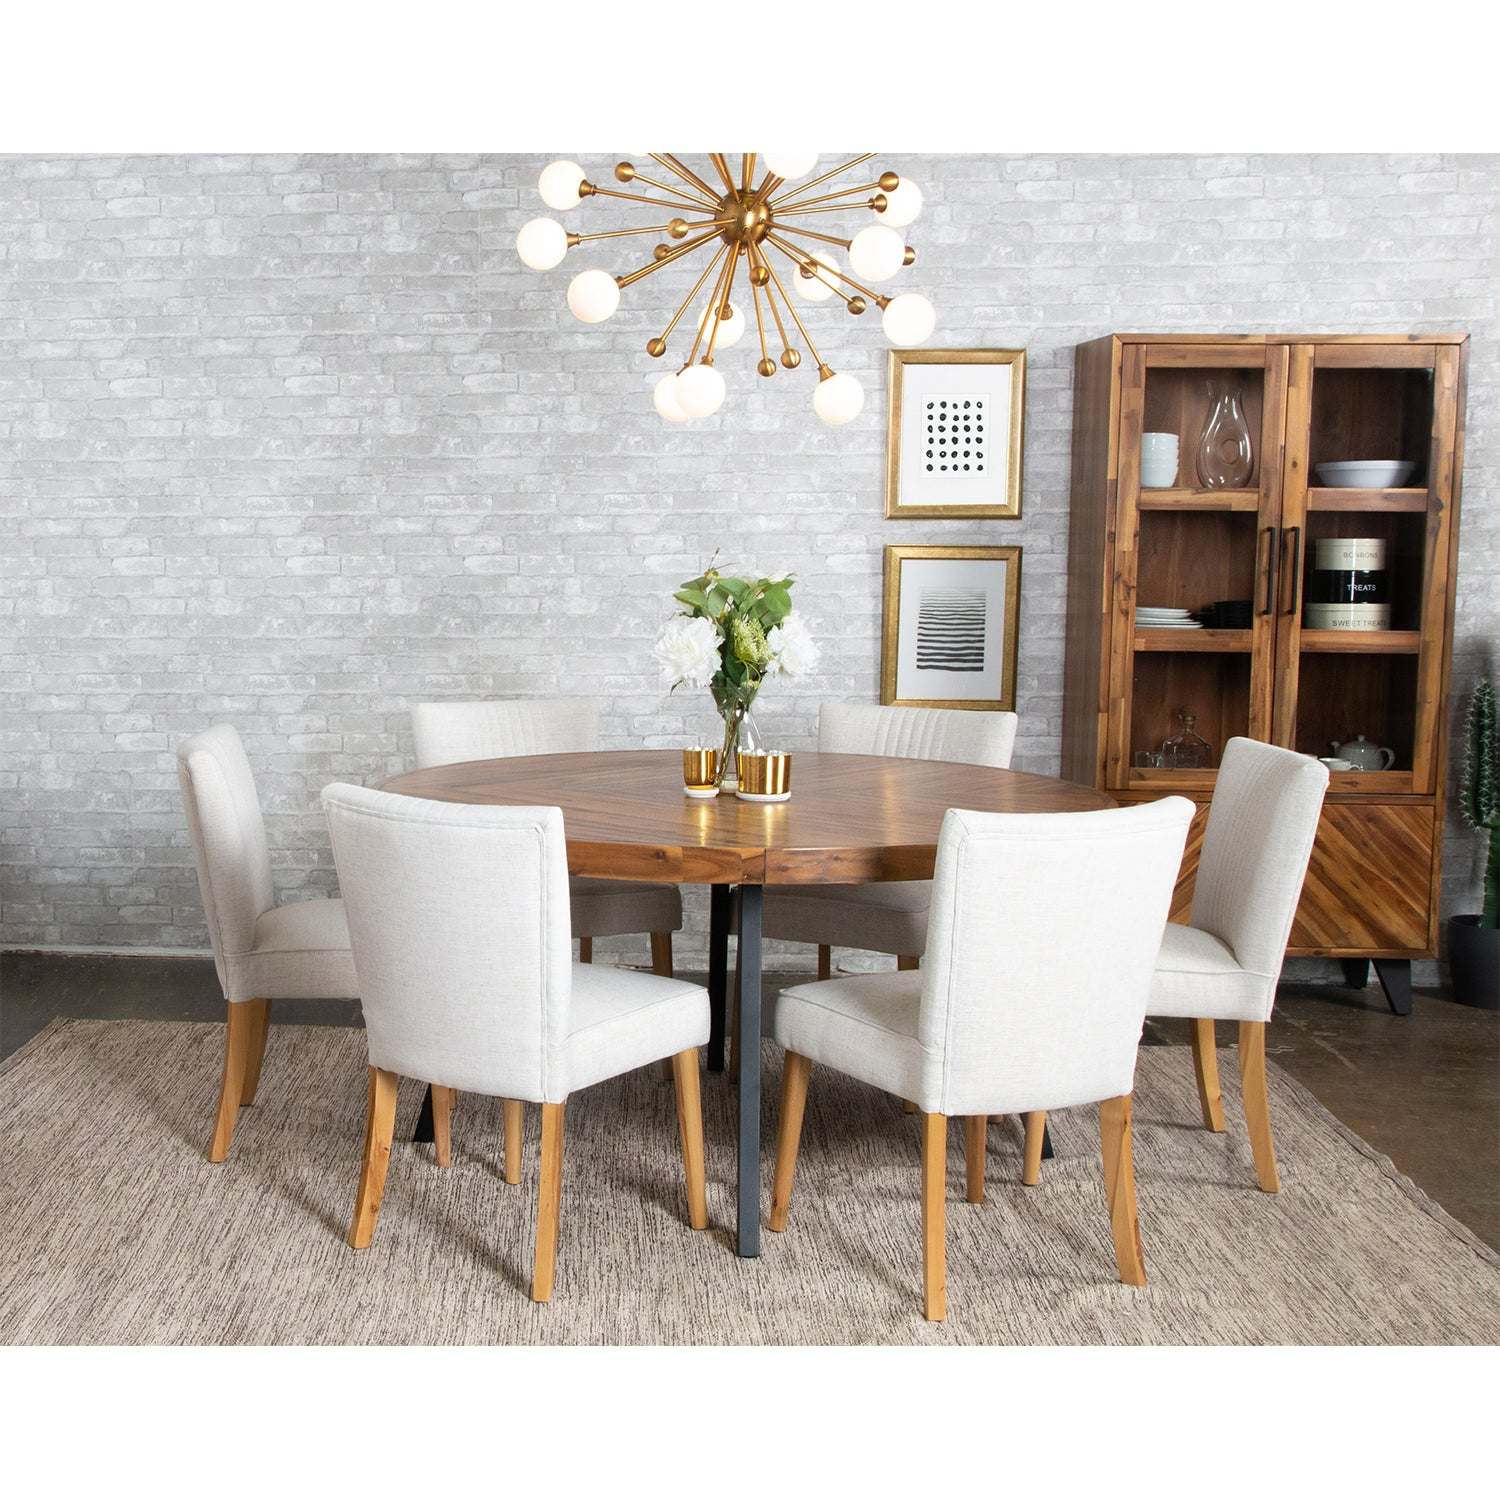 Avalon Round 8 Seat Dining Table Large Bois Cuir